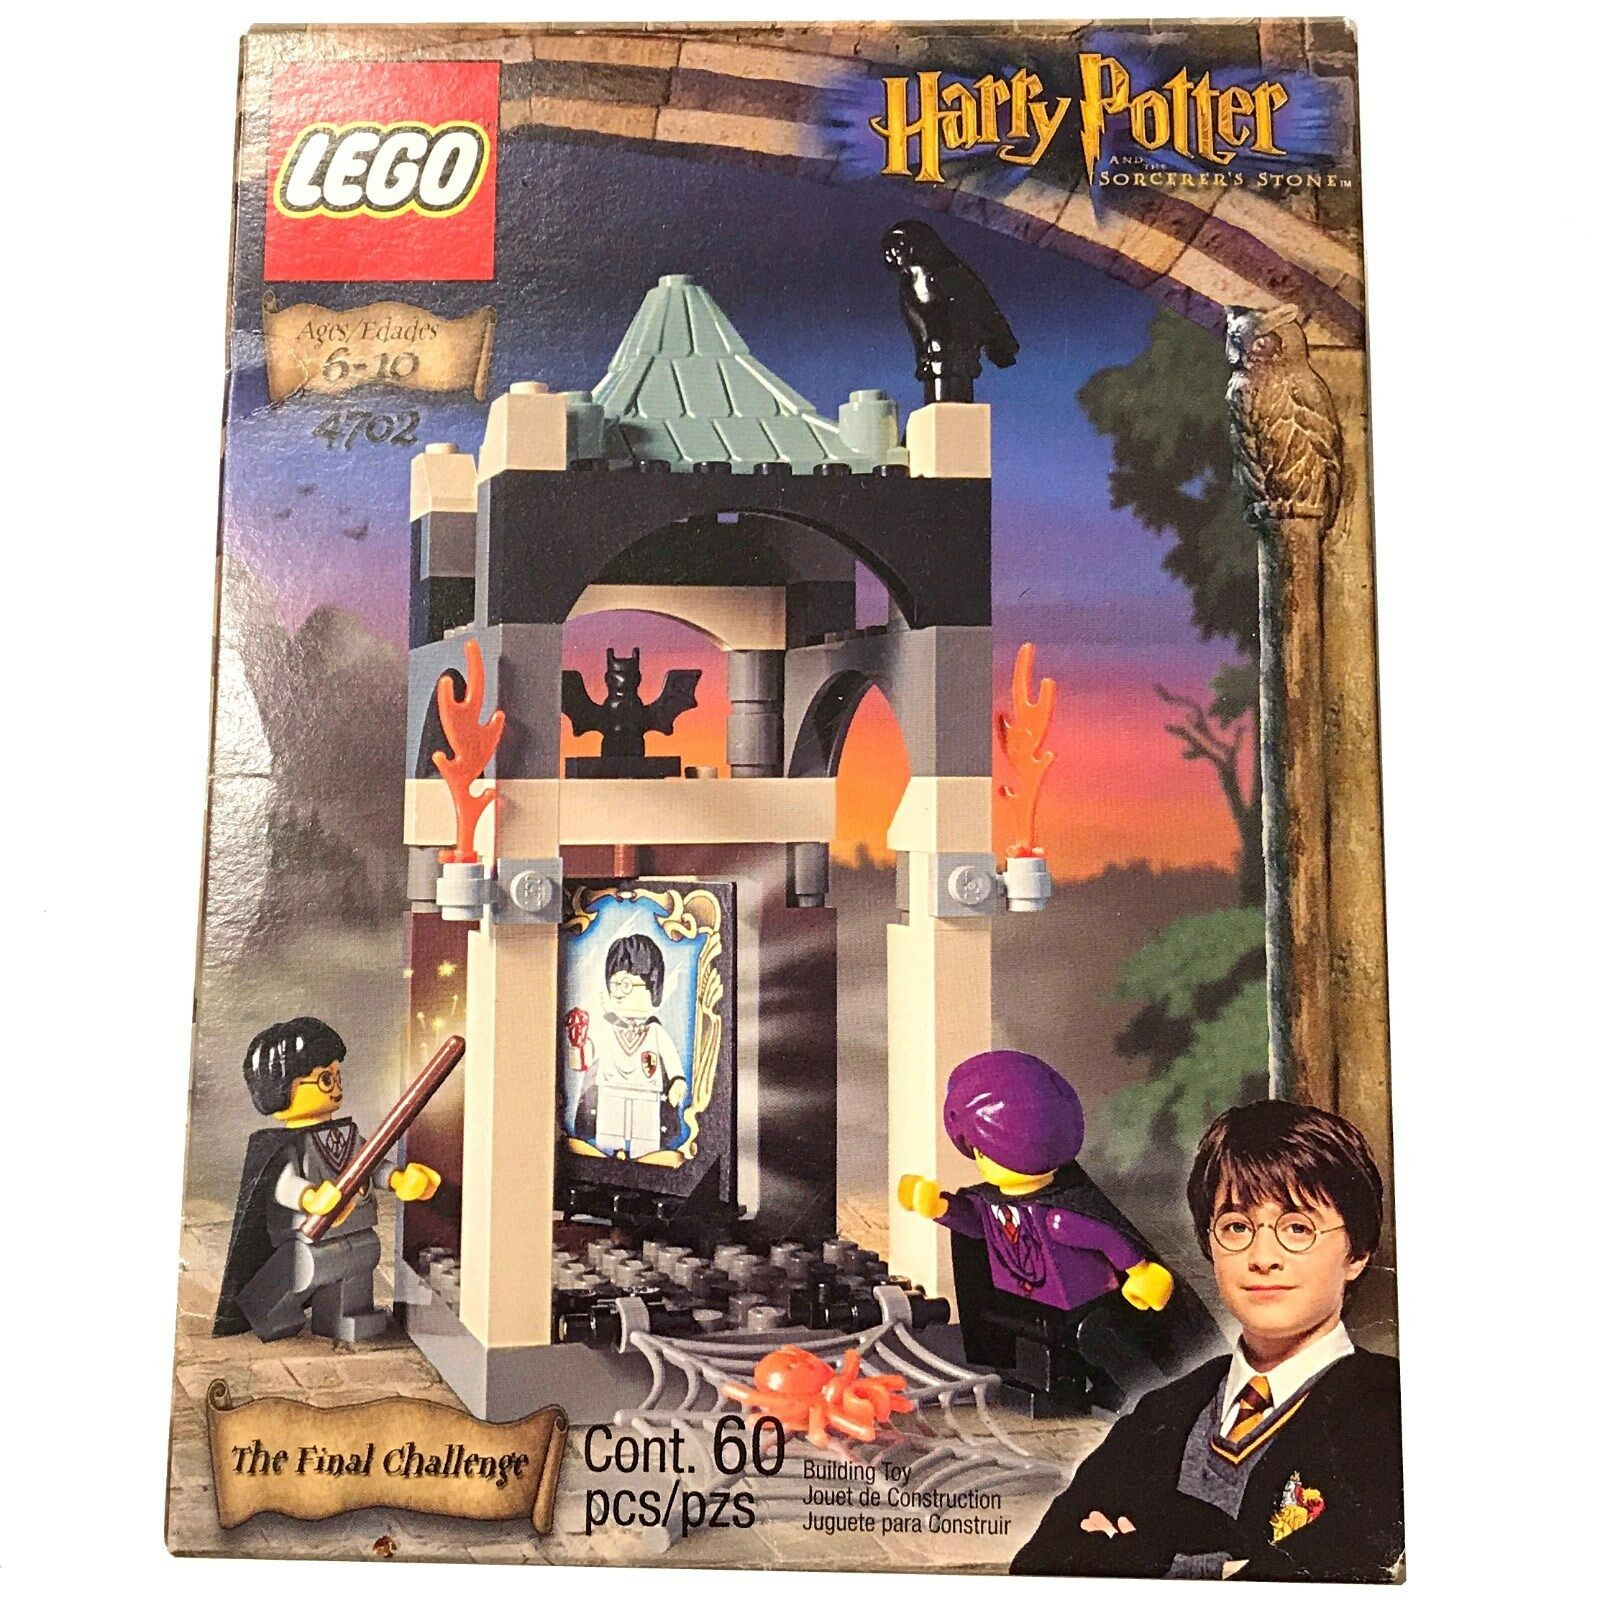 LEGO Harry Potter: The Final Challenge (4702) BRAND NEW IN BOX